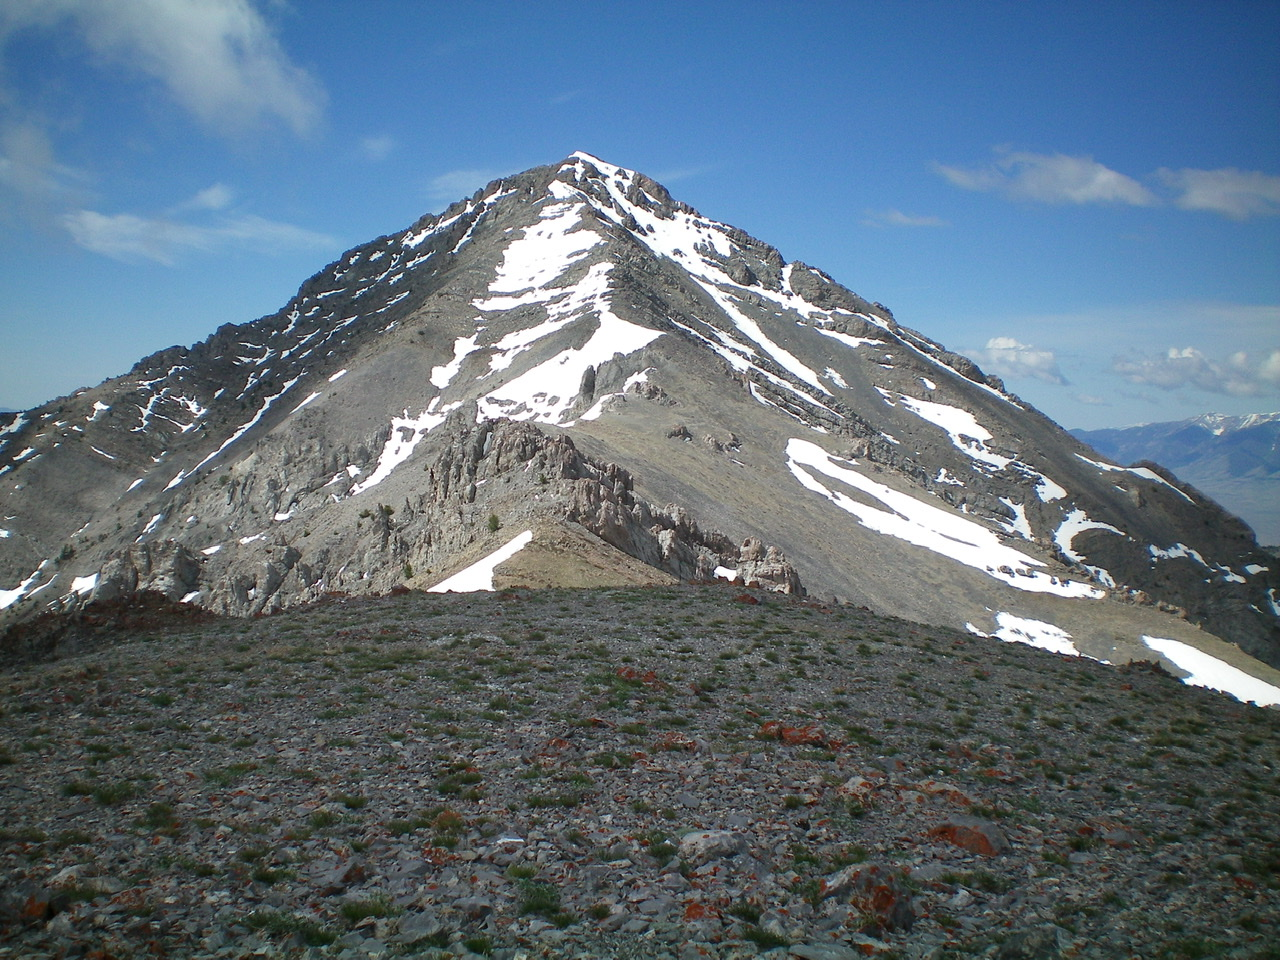 The entire North Ridge of Saddle Mountain, as viewed from Point 10196. Notice the large Class 3 ridge outcrop on the ridge, well below the steep upper section of the ridge. Livingston Douglas Photo